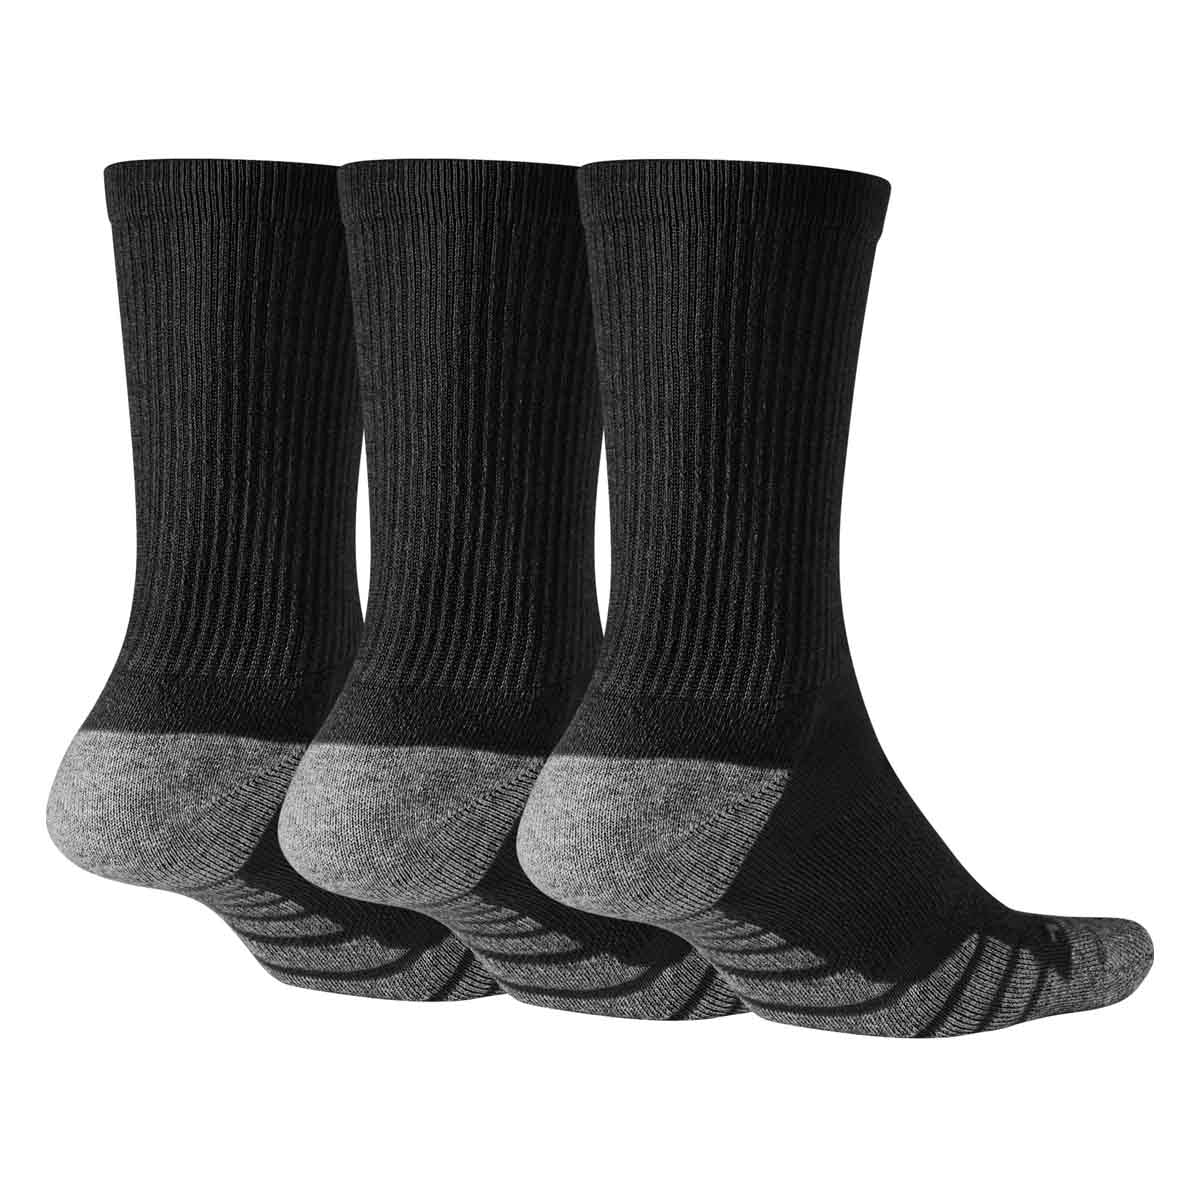 Nike Everyday Max Cushioned Women's Training Crew Socks (3 Pairs)